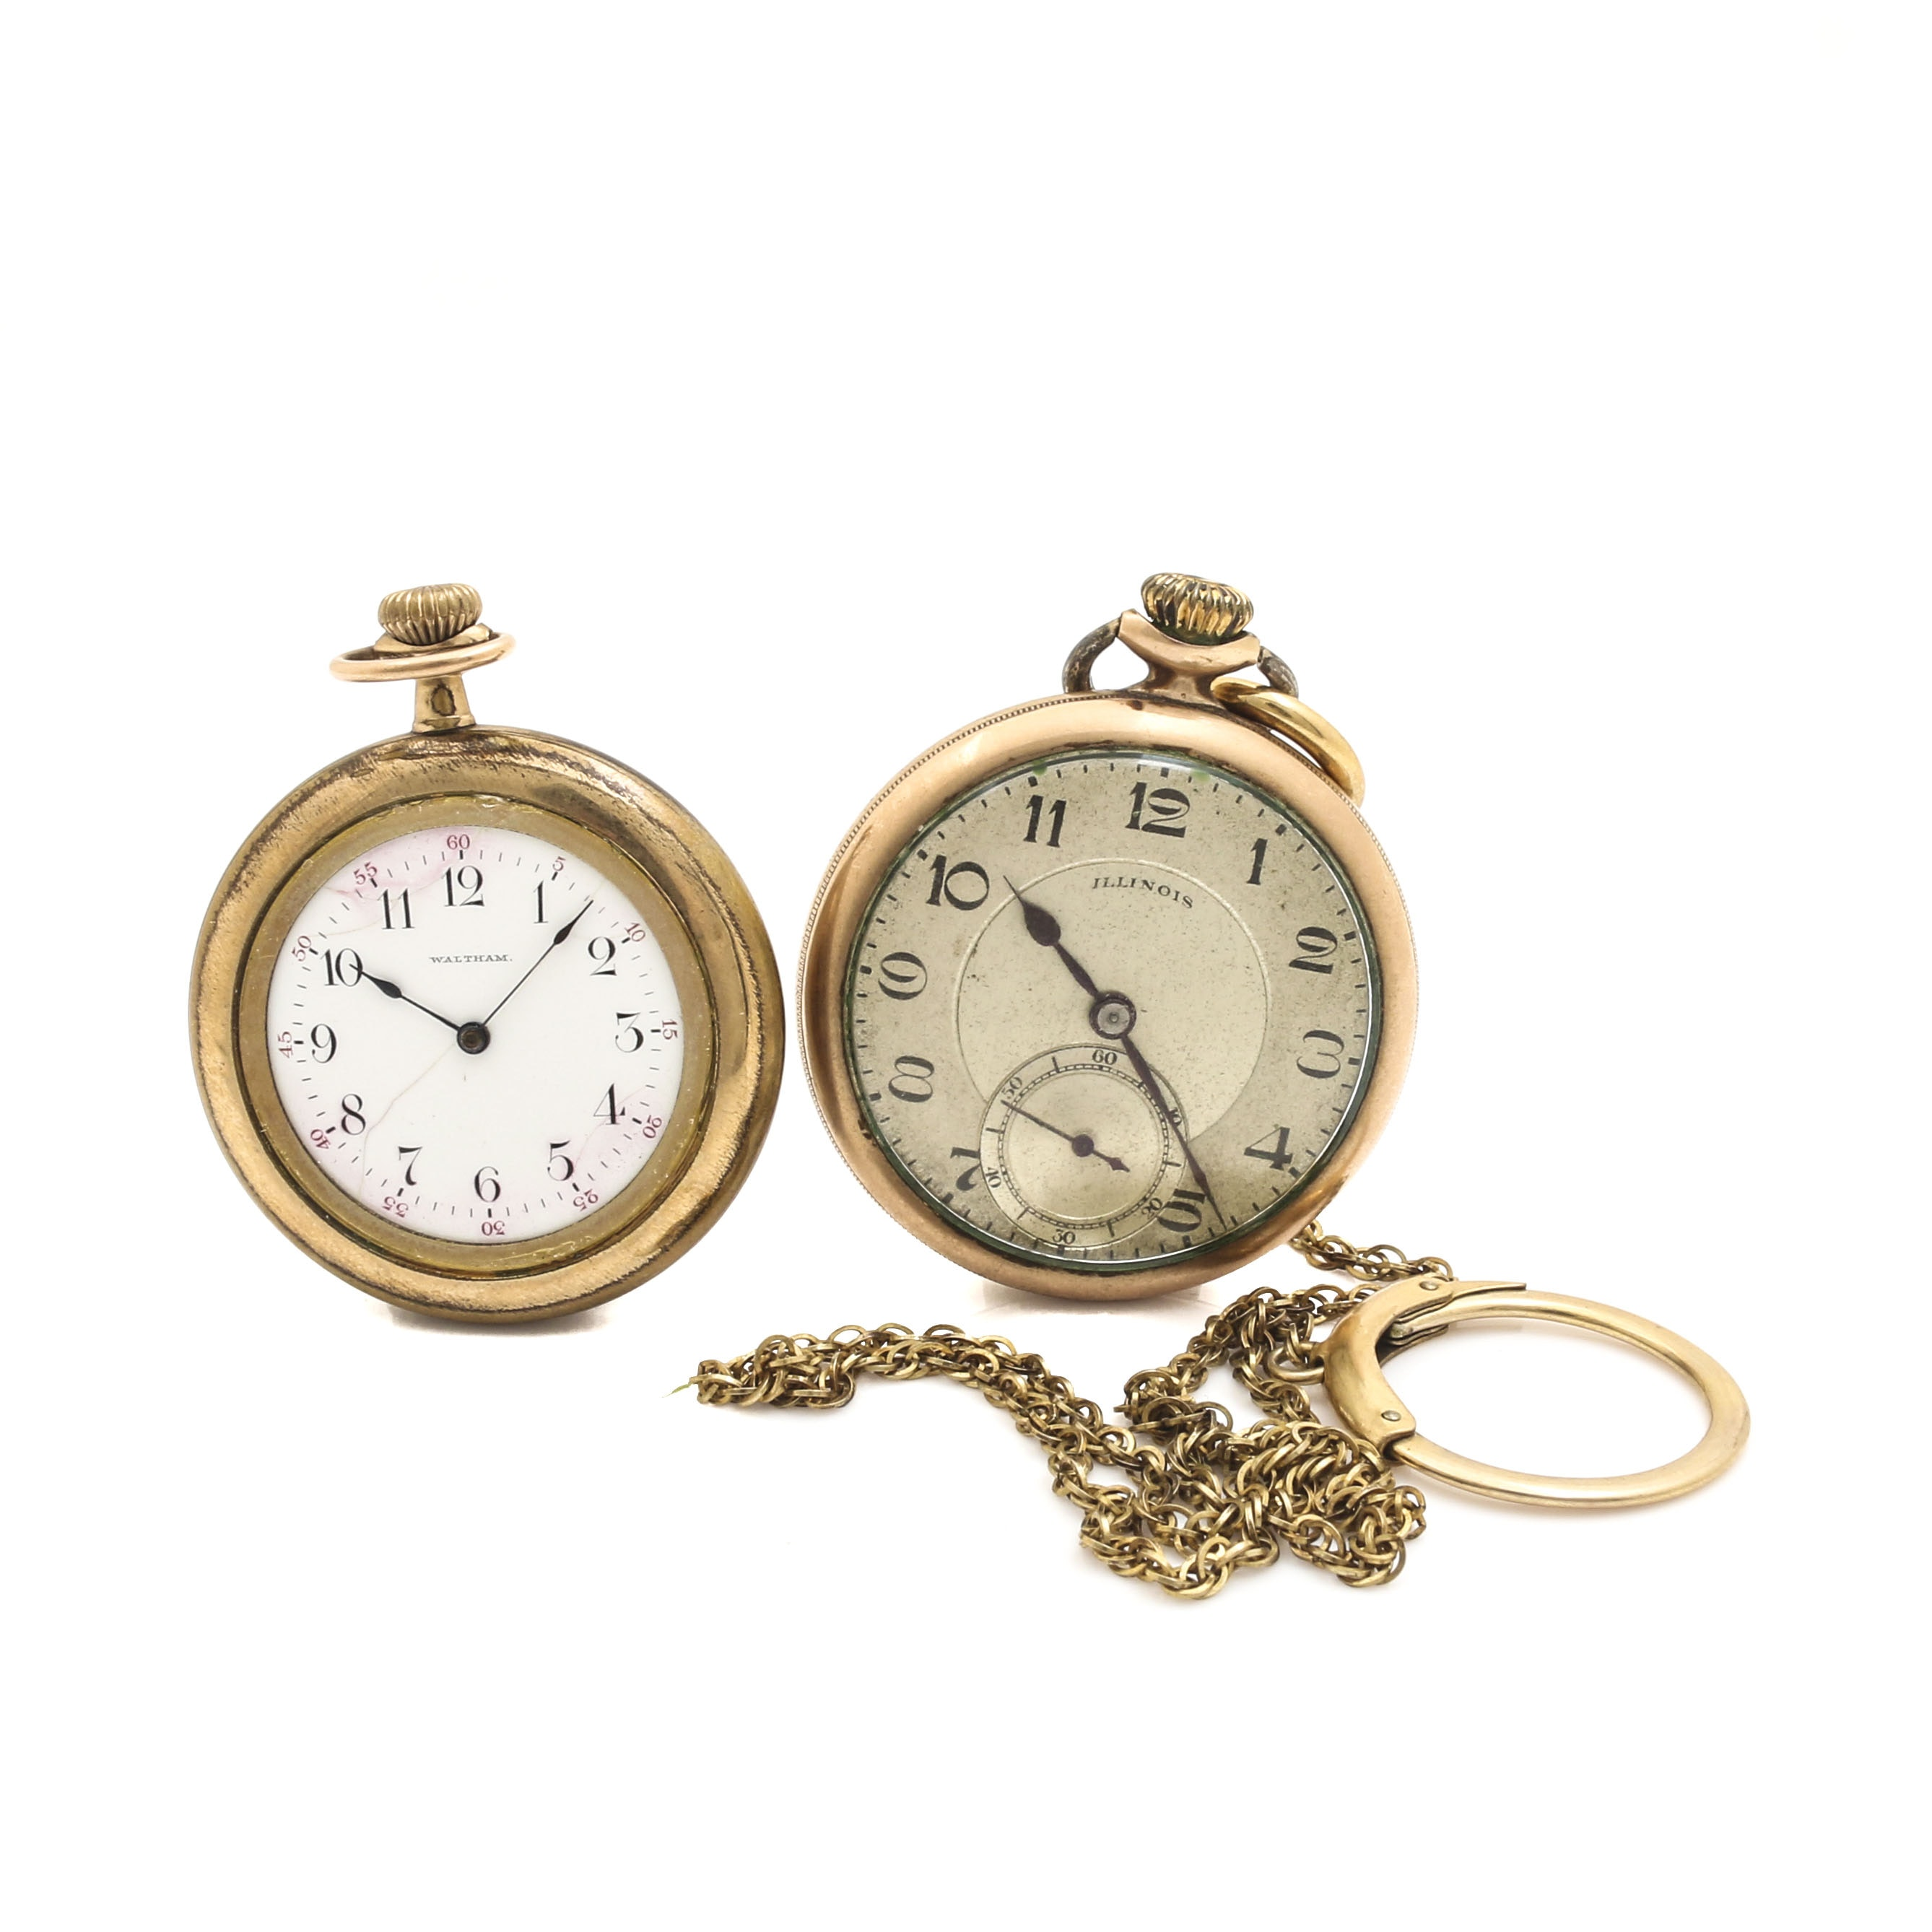 Pair of Waltham and Illinois Watch Co. Pocket Watches